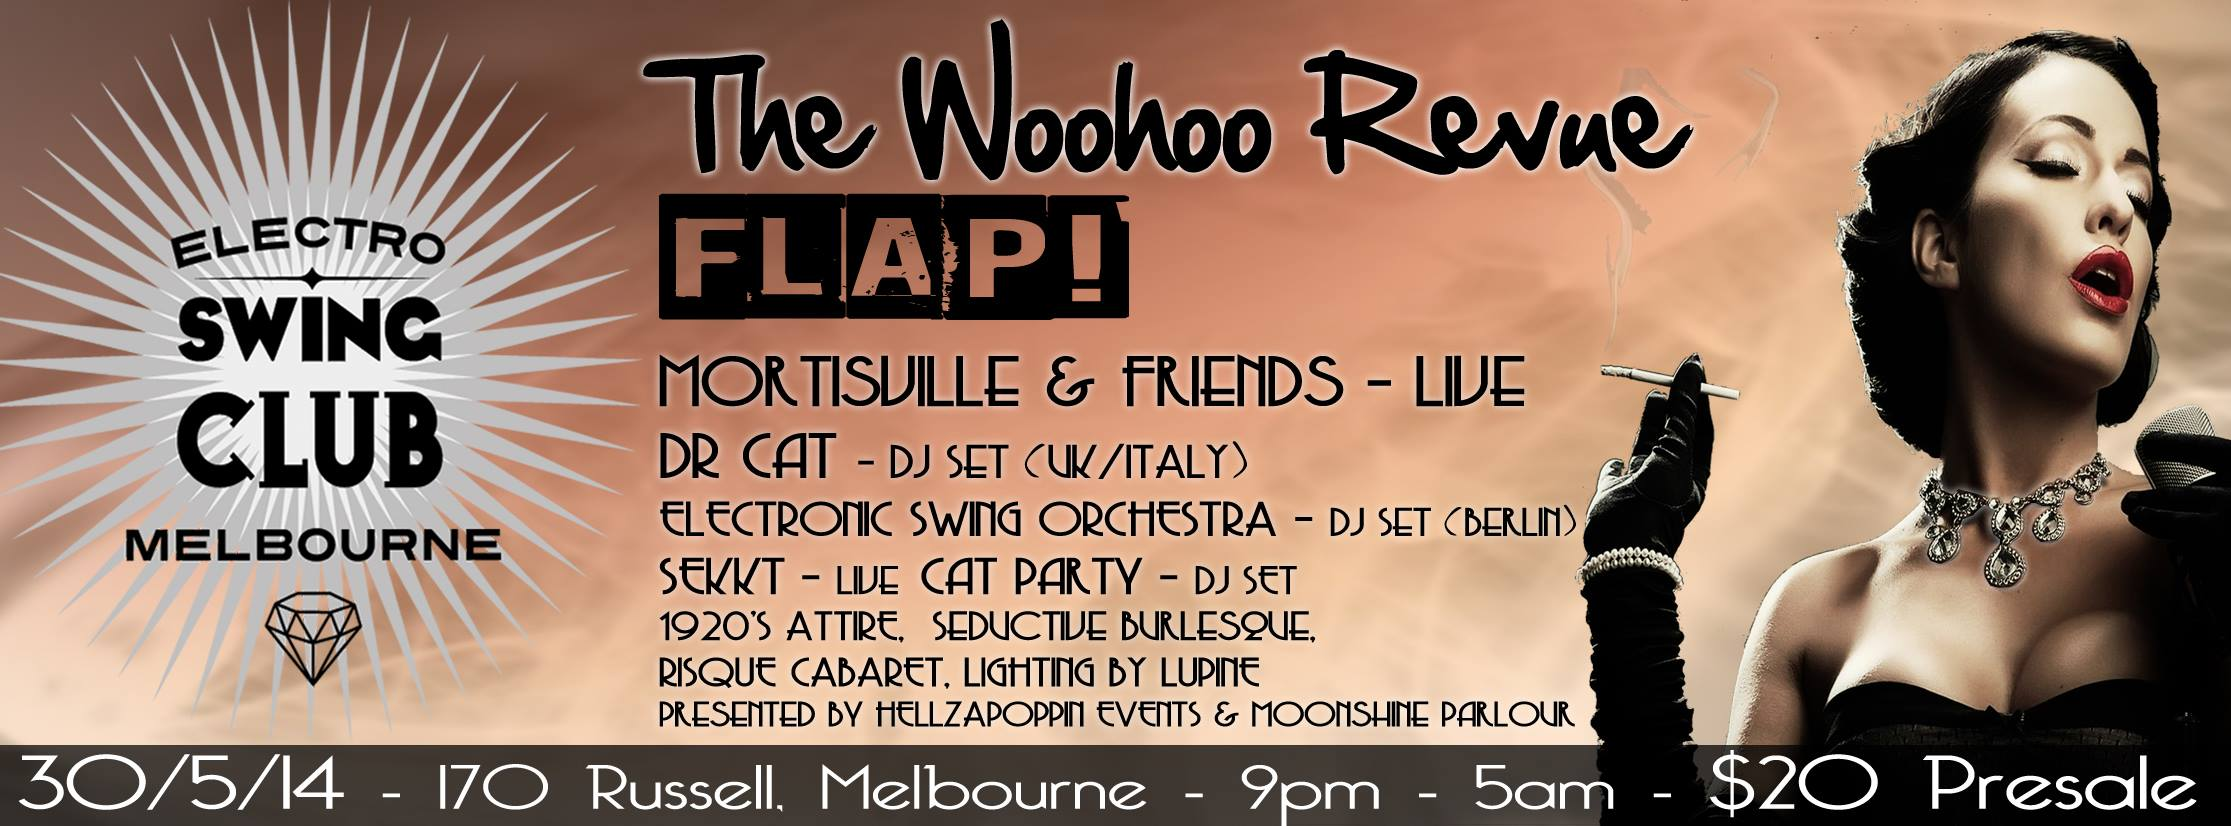 Electroswing Club Melbourne Launch